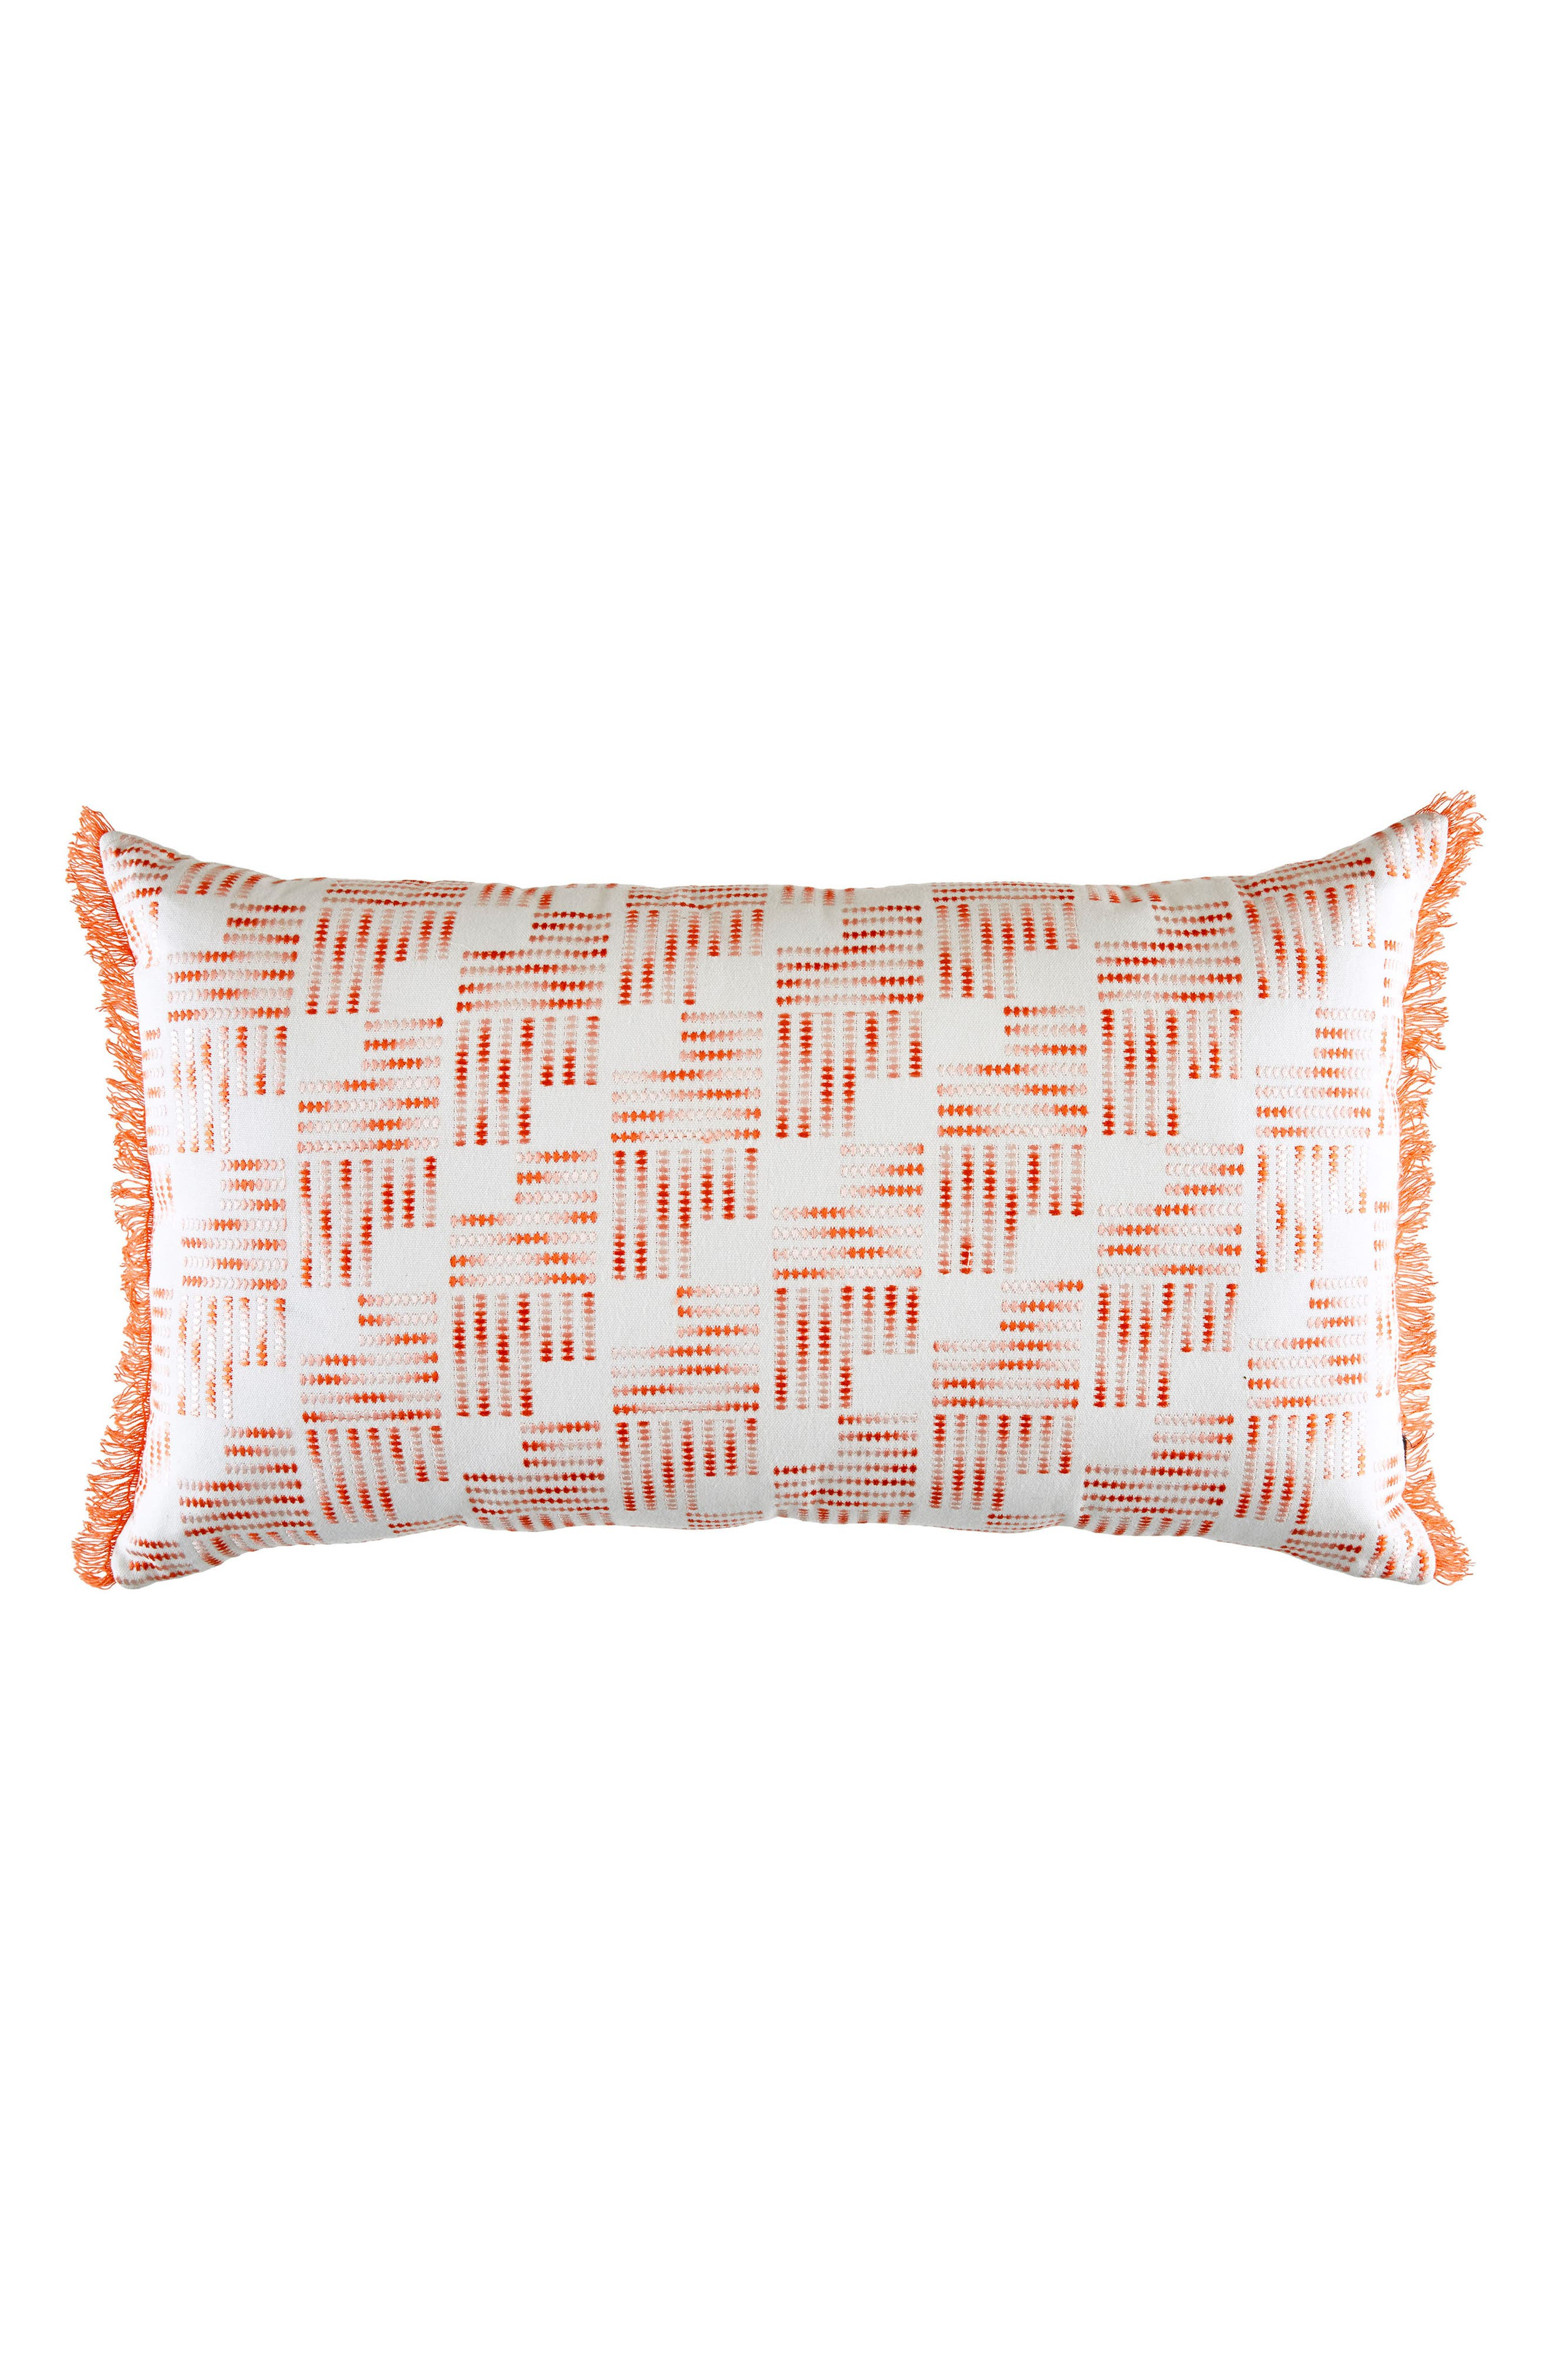 Embroidered Fringe Accent Pillow,                         Main,                         color, Light/ Pastel Pink